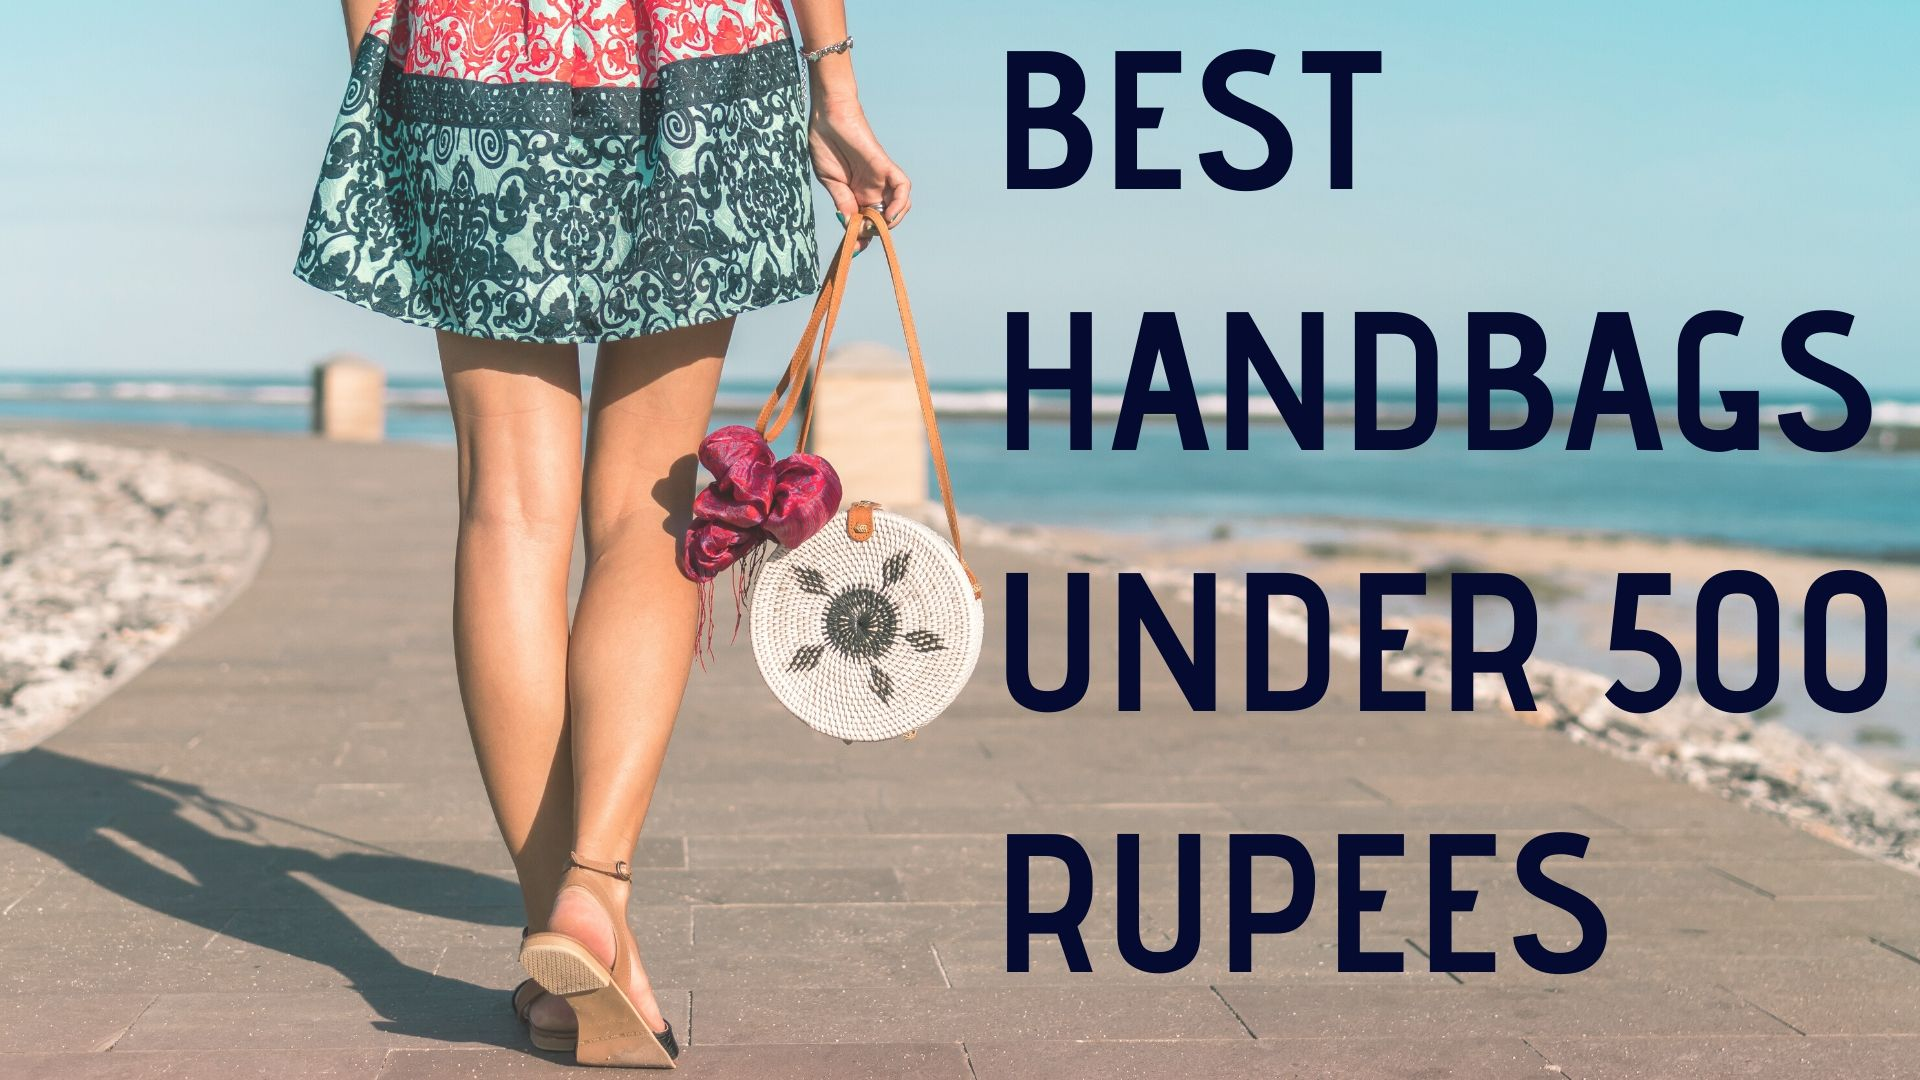 best handbags under 500 inr